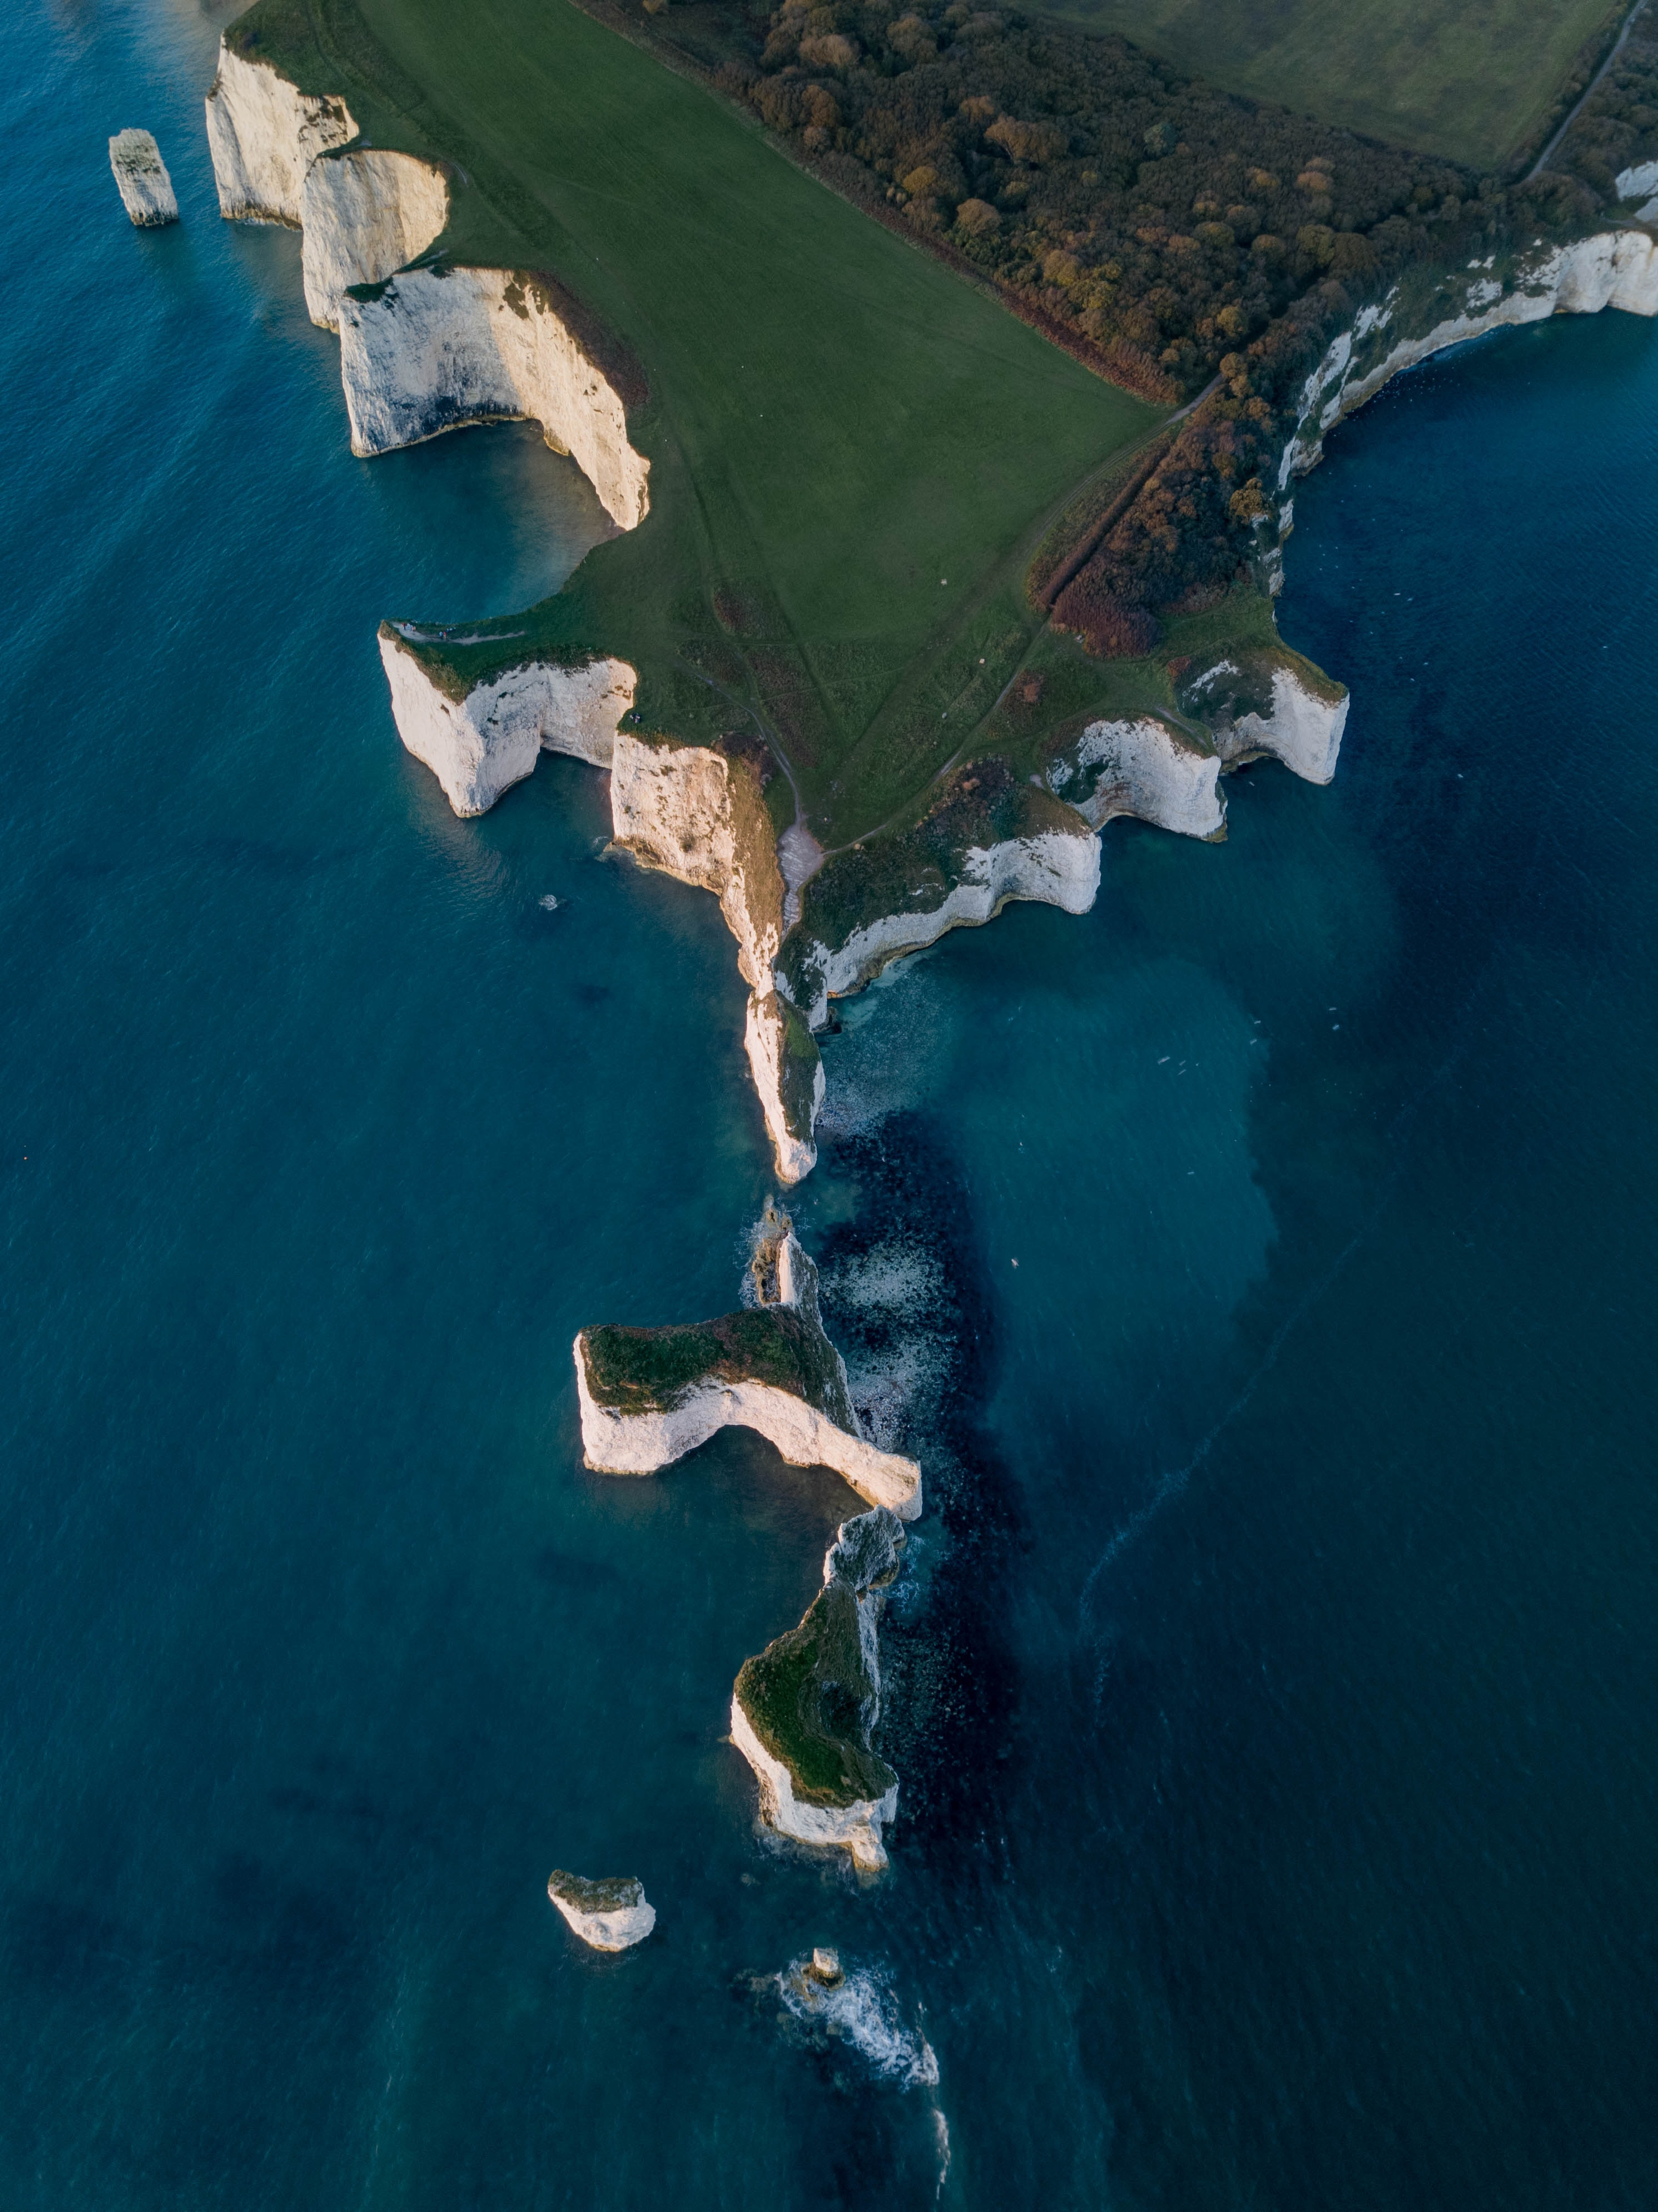 bird's eye view photography of islet